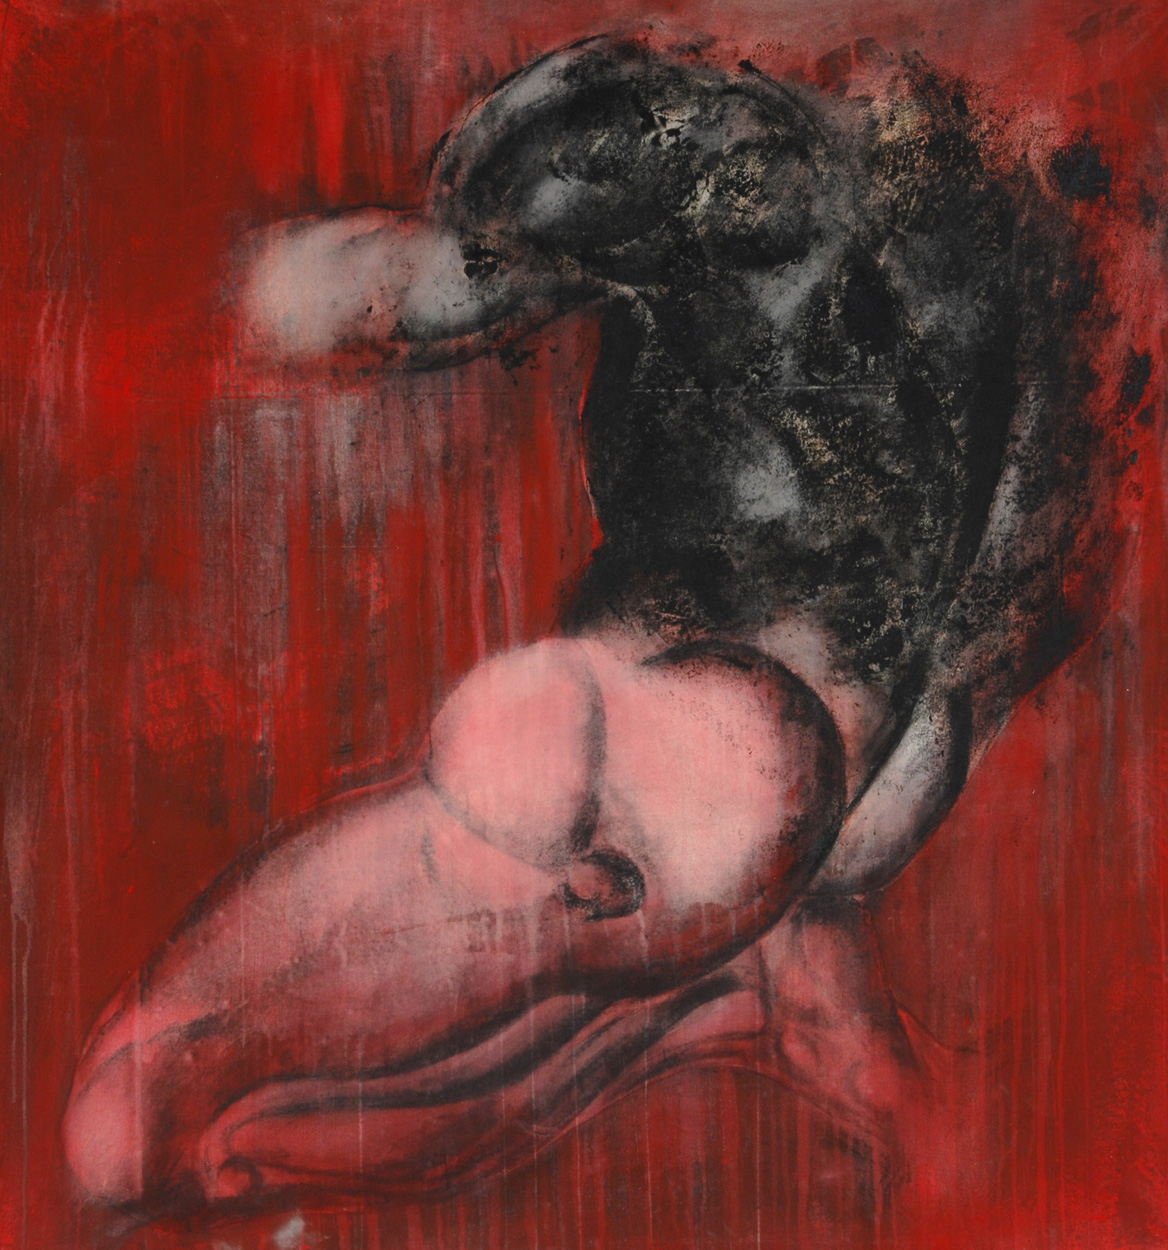 Man and red canvas - 150 x 150 cm - 1999